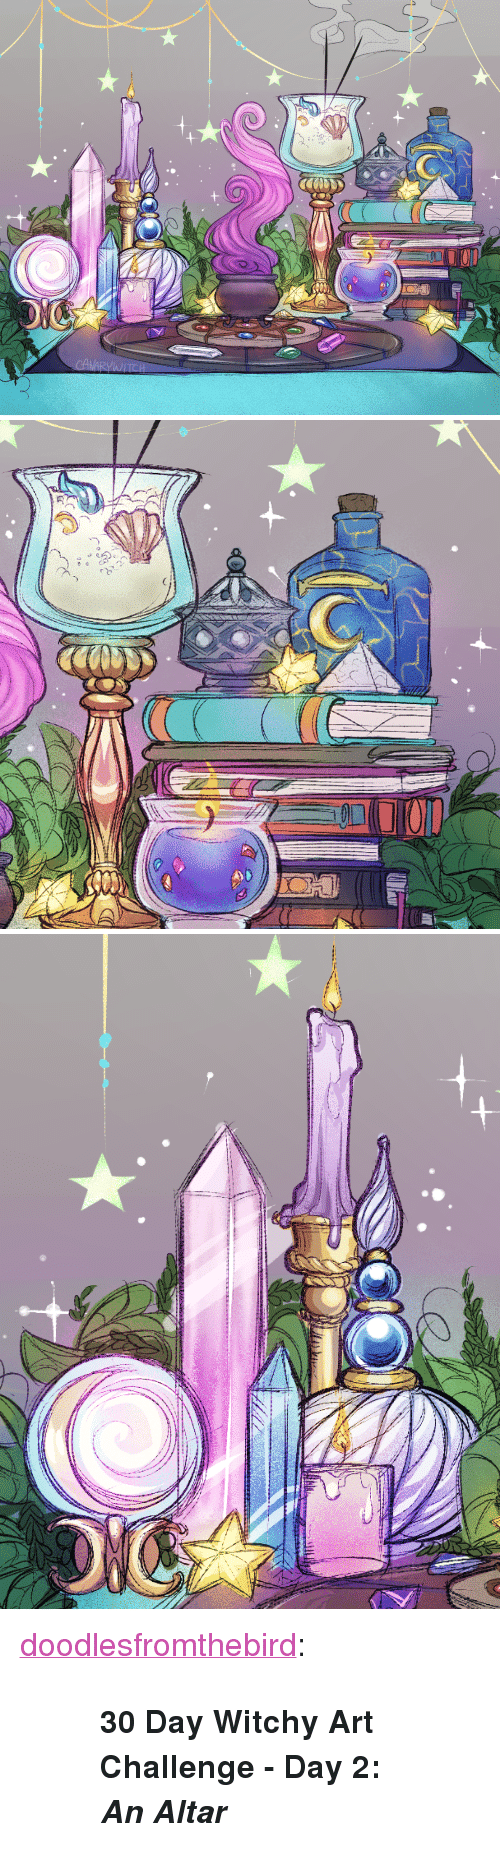 """Tumblr, Blog, and Http: <p><a href=""""http://doodlesfromthebird.tumblr.com/post/170549512041/30-day-witchy-art-challenge-day-2-an-altar"""" class=""""tumblr_blog"""">doodlesfromthebird</a>:</p> <blockquote><blockquote><p>  <b>30 Day Witchy Art Challenge - </b><b>Day 2:<i> </i></b><b><i>An Altar</i></b><br/></p></blockquote></blockquote>"""